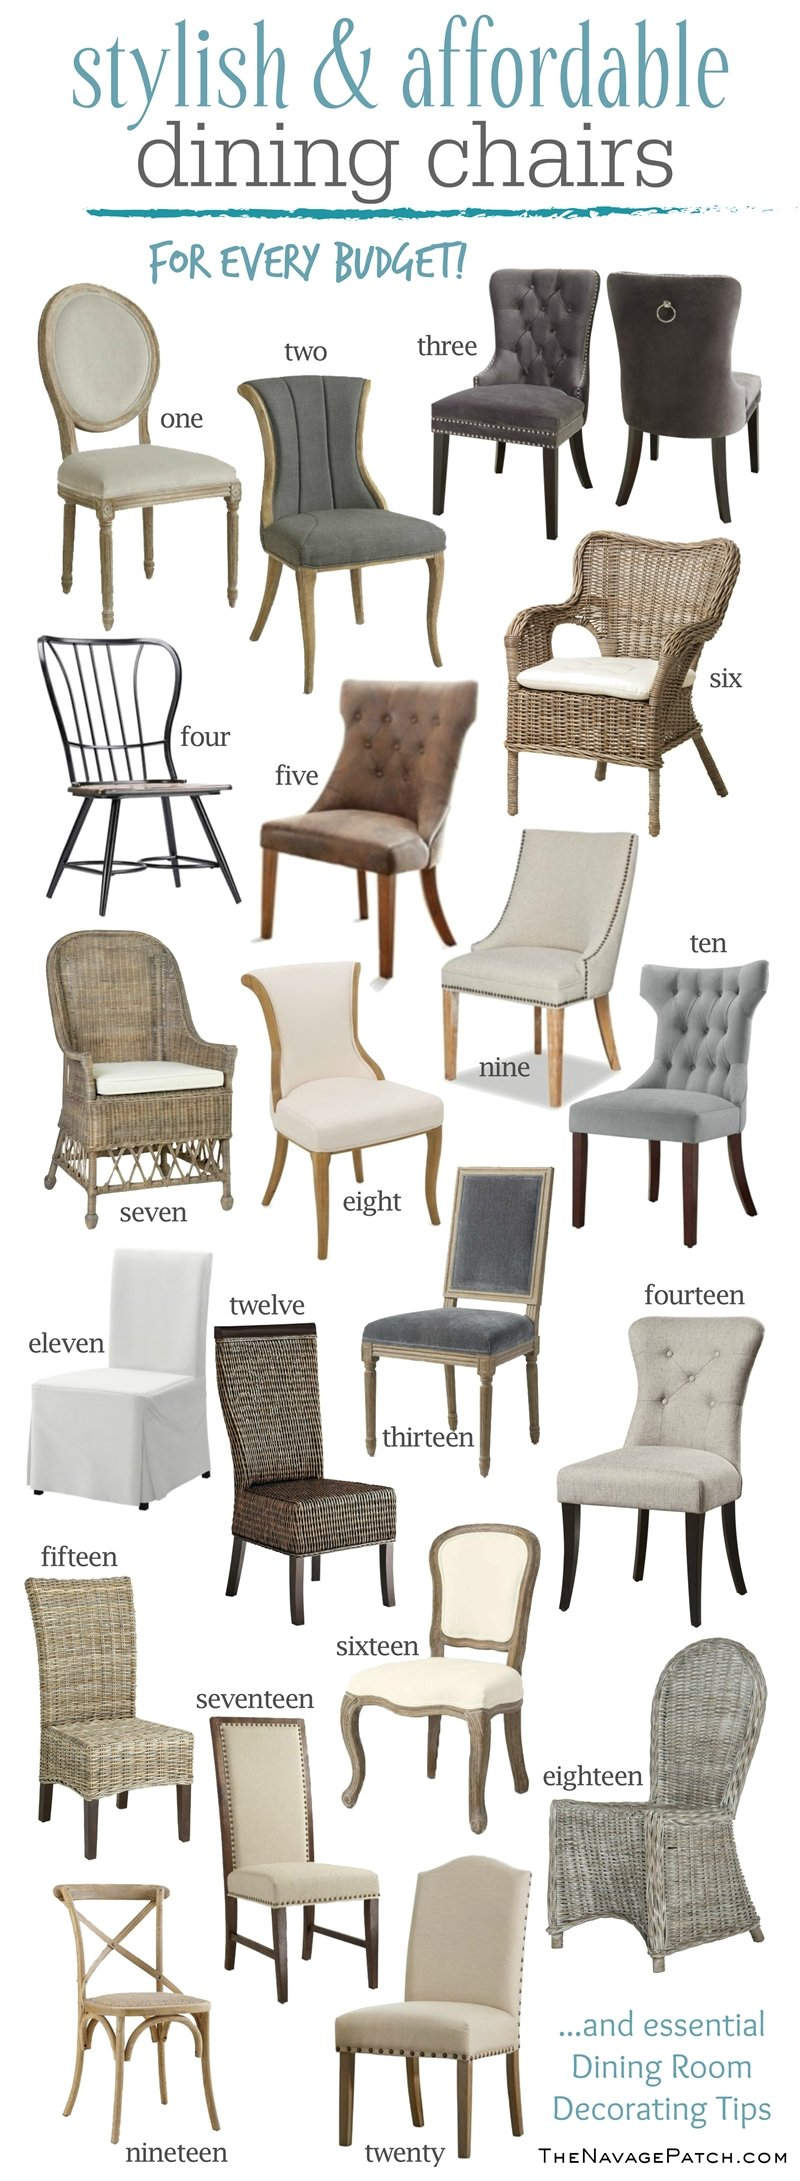 Inexpensive Chairs Dining Room Decor Tips And Inexpensive Dining Chair Options